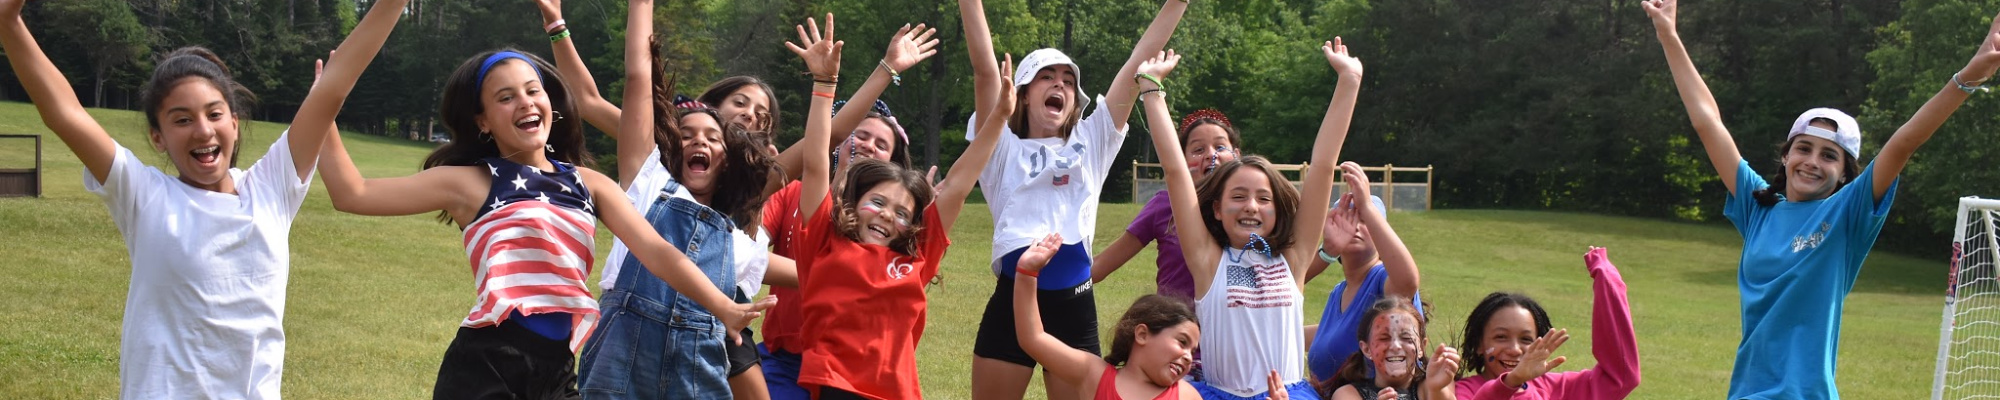 Group of girls enjoying summer camp, expressing excitement by jumping simultaneously